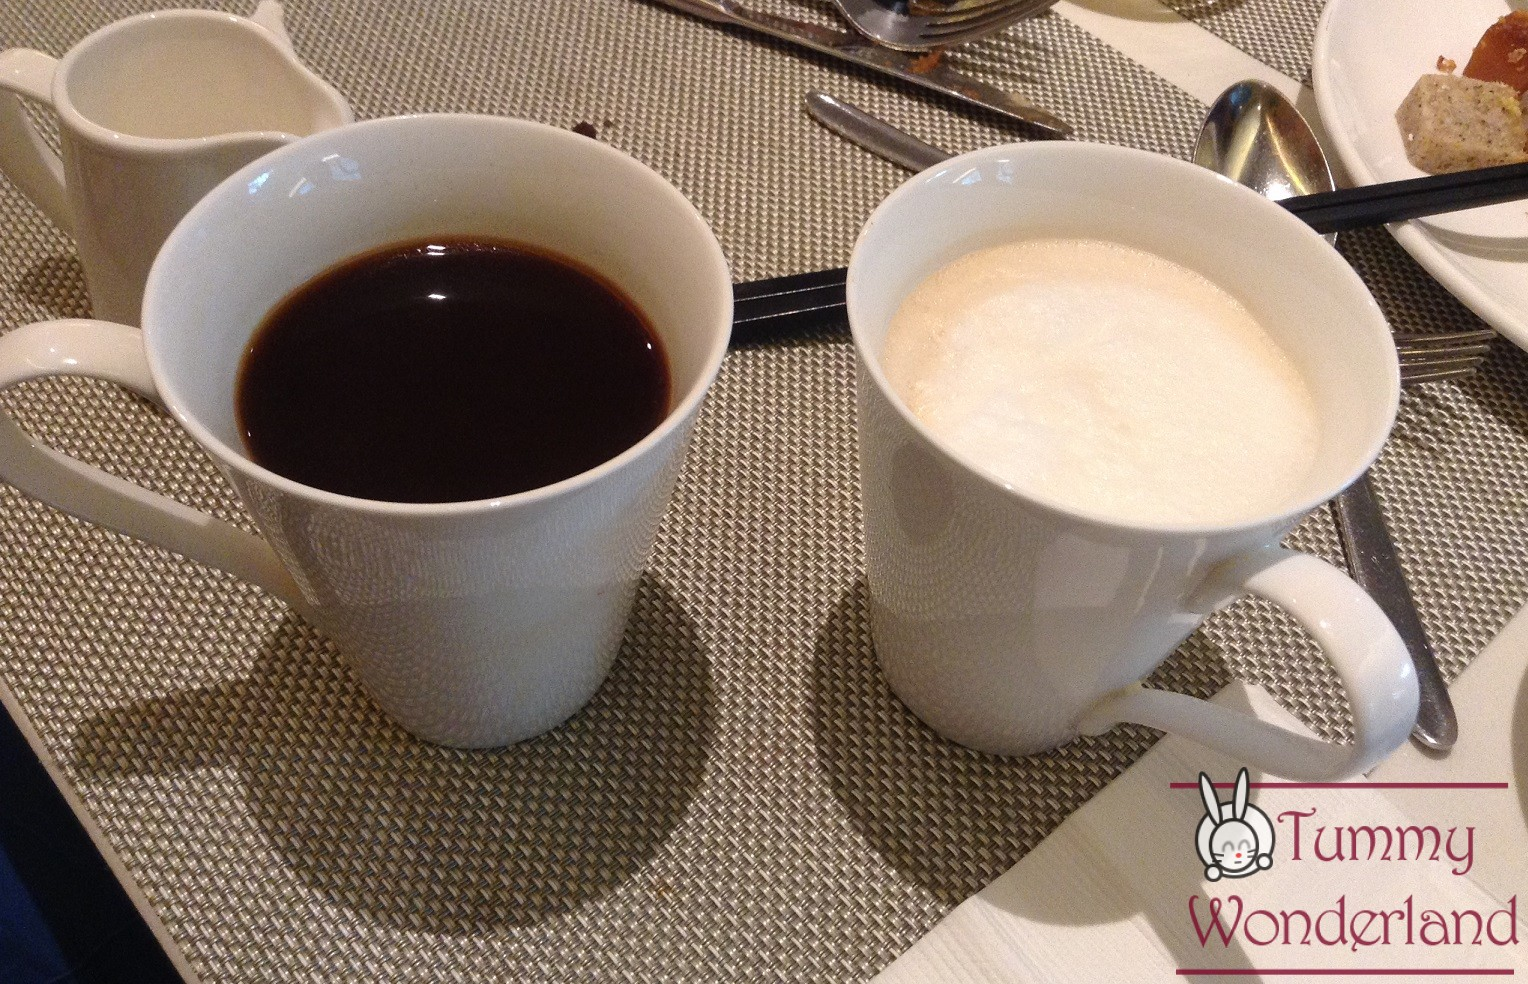 novotel_coffee latte